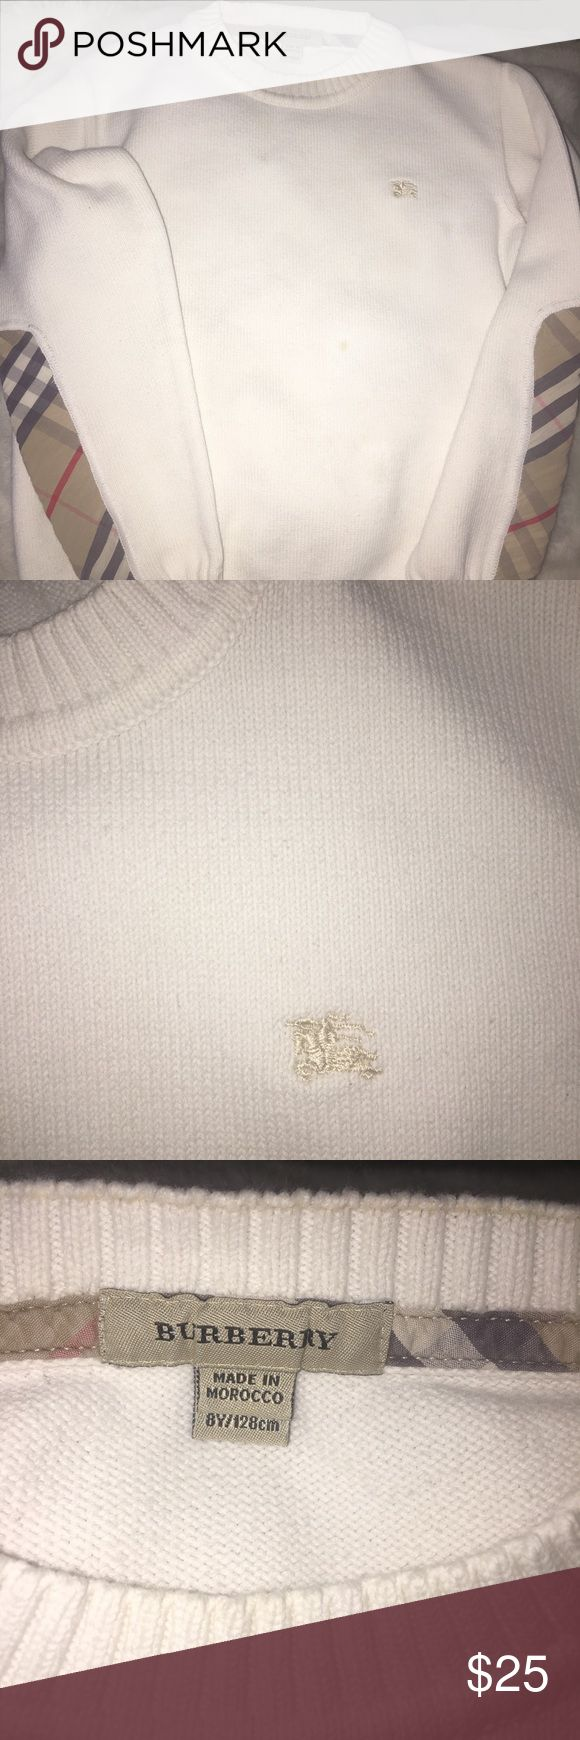 Used Burberry Big Kids Sweater Size 10 It is still in good condition, no holes or rips but I did store it for about a year and I noticed a few super light stains. Perhaps some Oxy Clean or a Clorox magic marker can remove, price based because of that. Burberry Shirts & Tops Sweaters